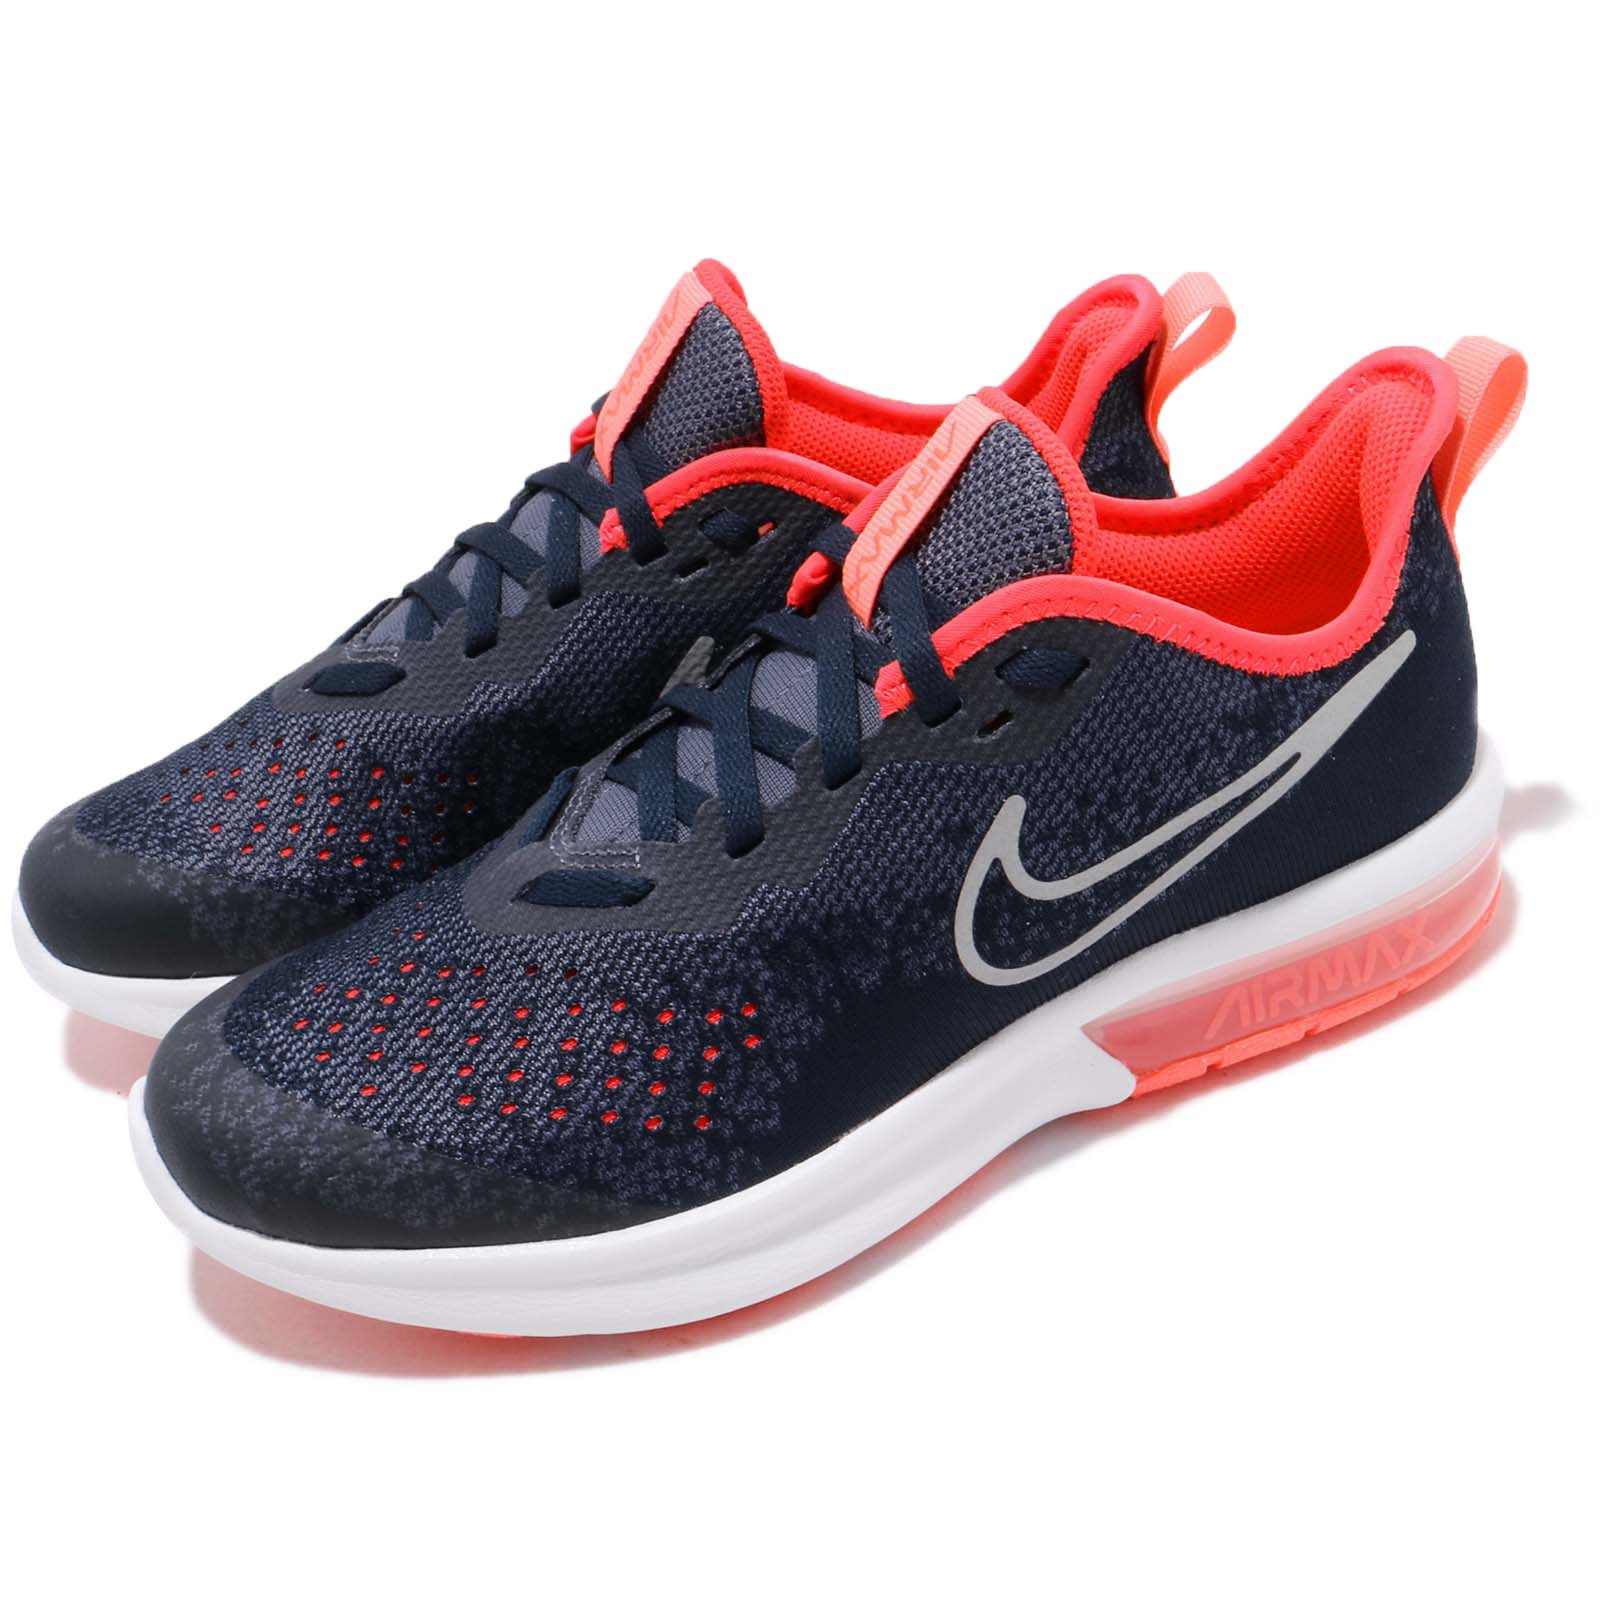 Nike Air Max Sequent 4 女鞋 AQ2245-500